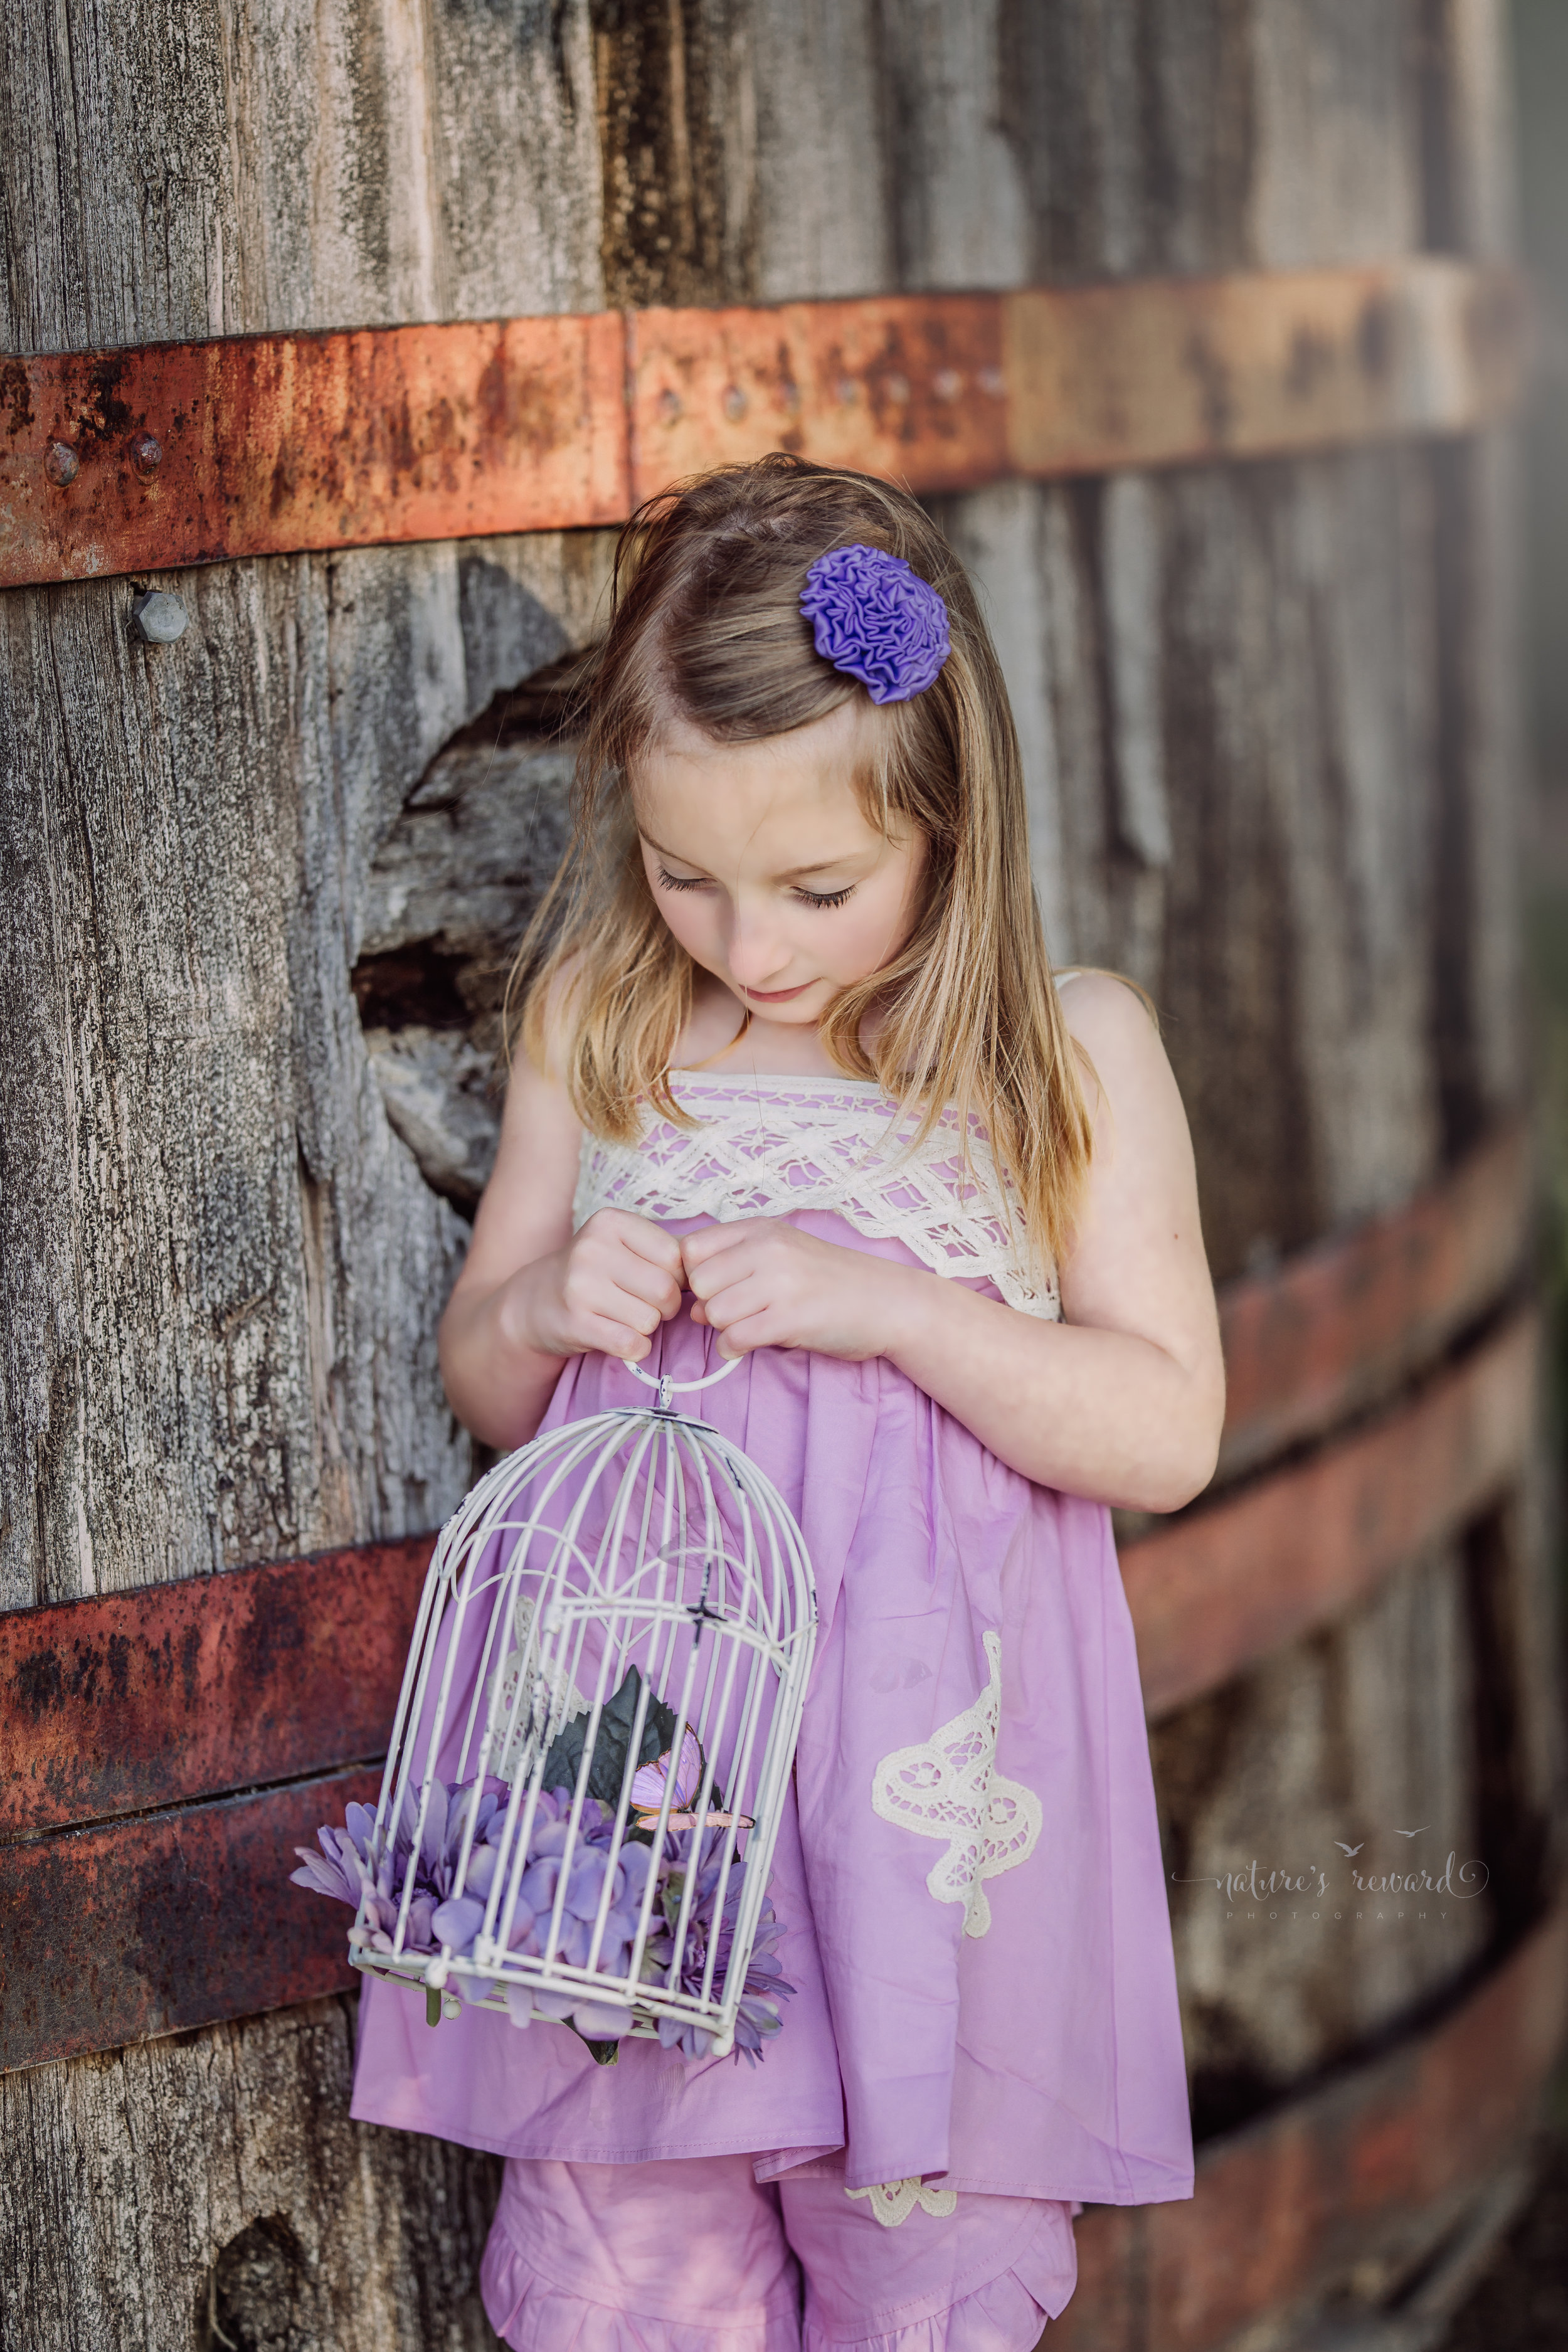 Innocence captured in this piece with a purple dress and bloomers holding a bird cage with purple flowers and and a composited butterfly by Nature's Reward Photography, a Southern California Photographer